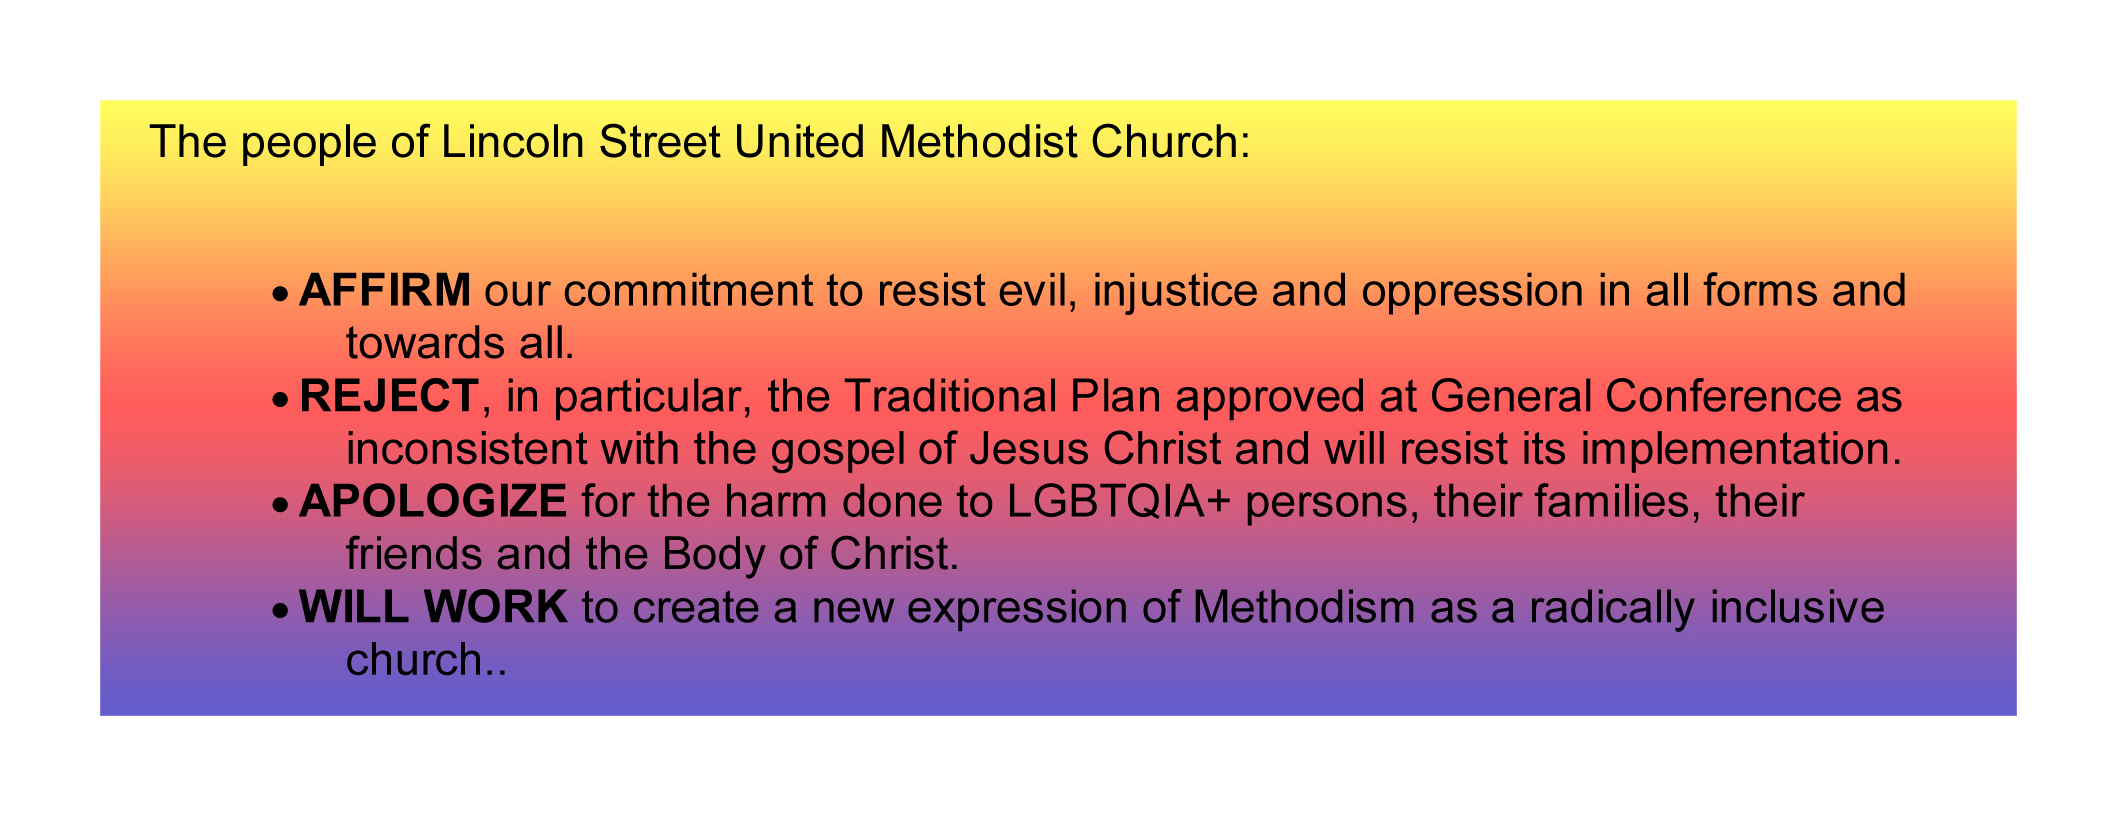 The people of Lincoln Street  						United Methodist Church Affirm our commitment to resist evil, injustice and oppression in all forms and  						towards all.  Reject, in particular, the Traditional Plan approved at General Conference as inconsistent with  						the gospel of Jesus Christ and will resist its implementation.  Apologize for the harm done to LGBTQIA+ persons,  						their families, their friends and the Body of Christ.  Will work to create a new expression of Methodism as a  						radically inclusive church.